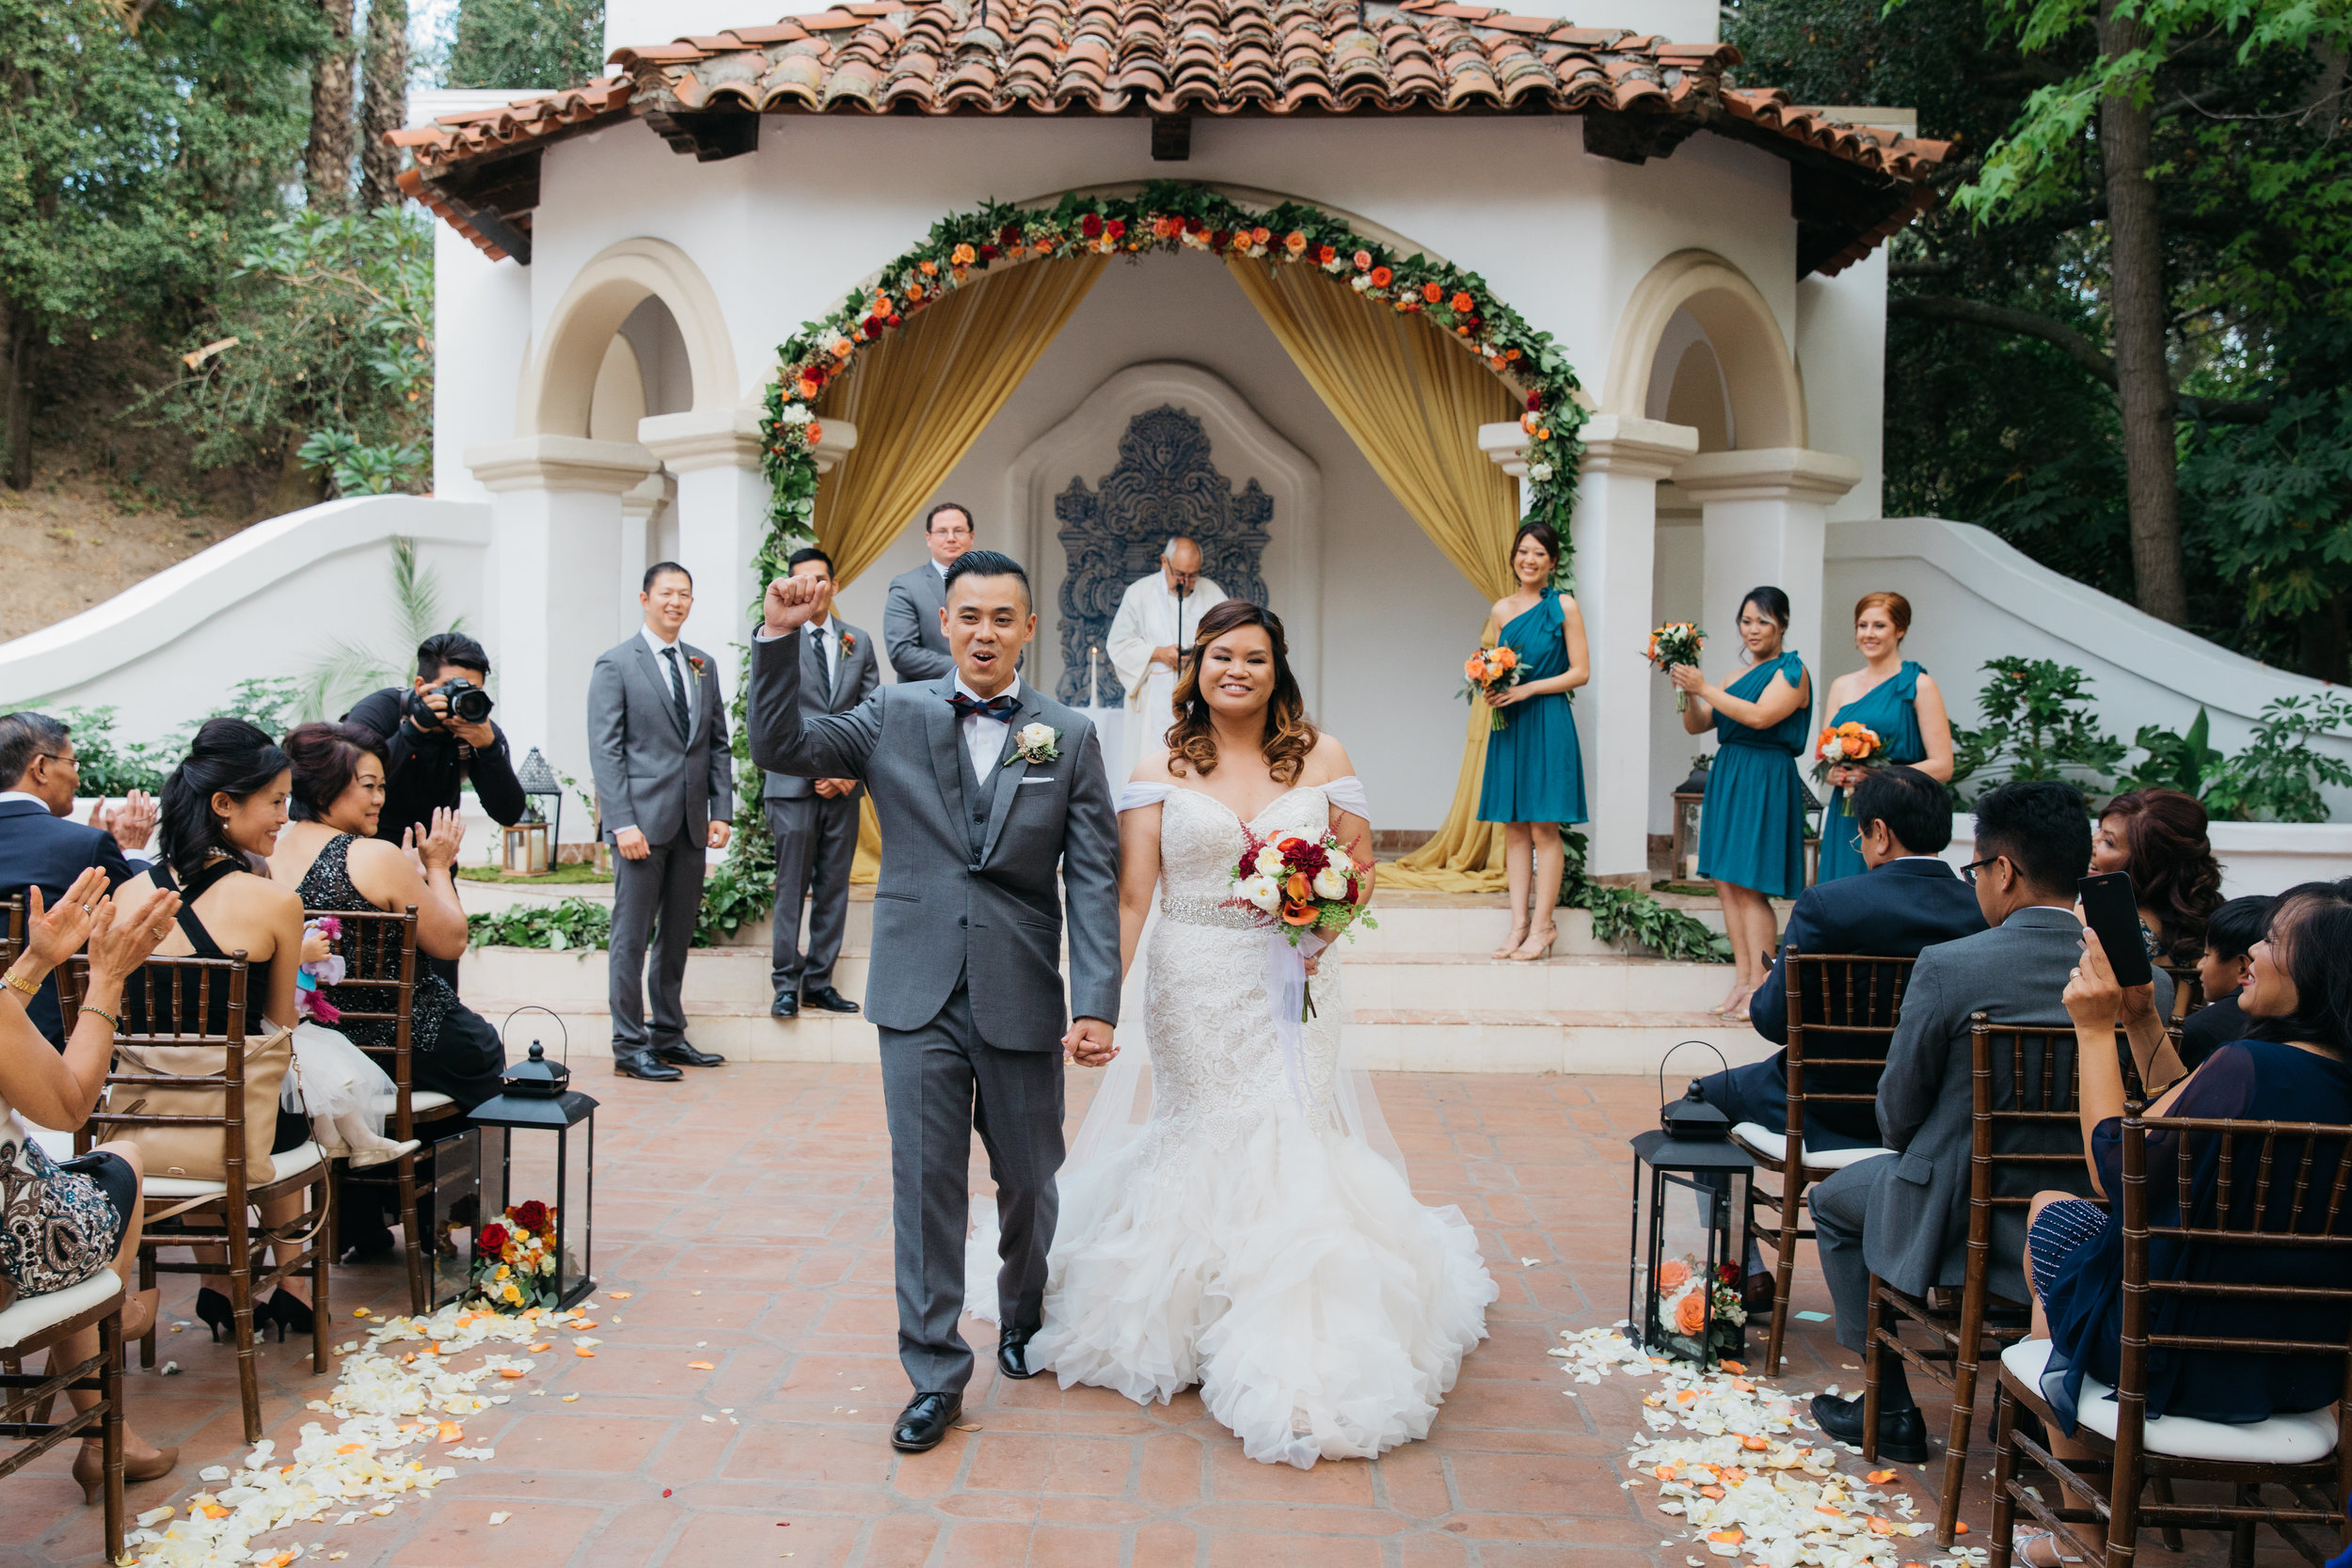 rancho-las-lomas-wedding-planner-best-wedding-planner-in-southern-california49.jpg